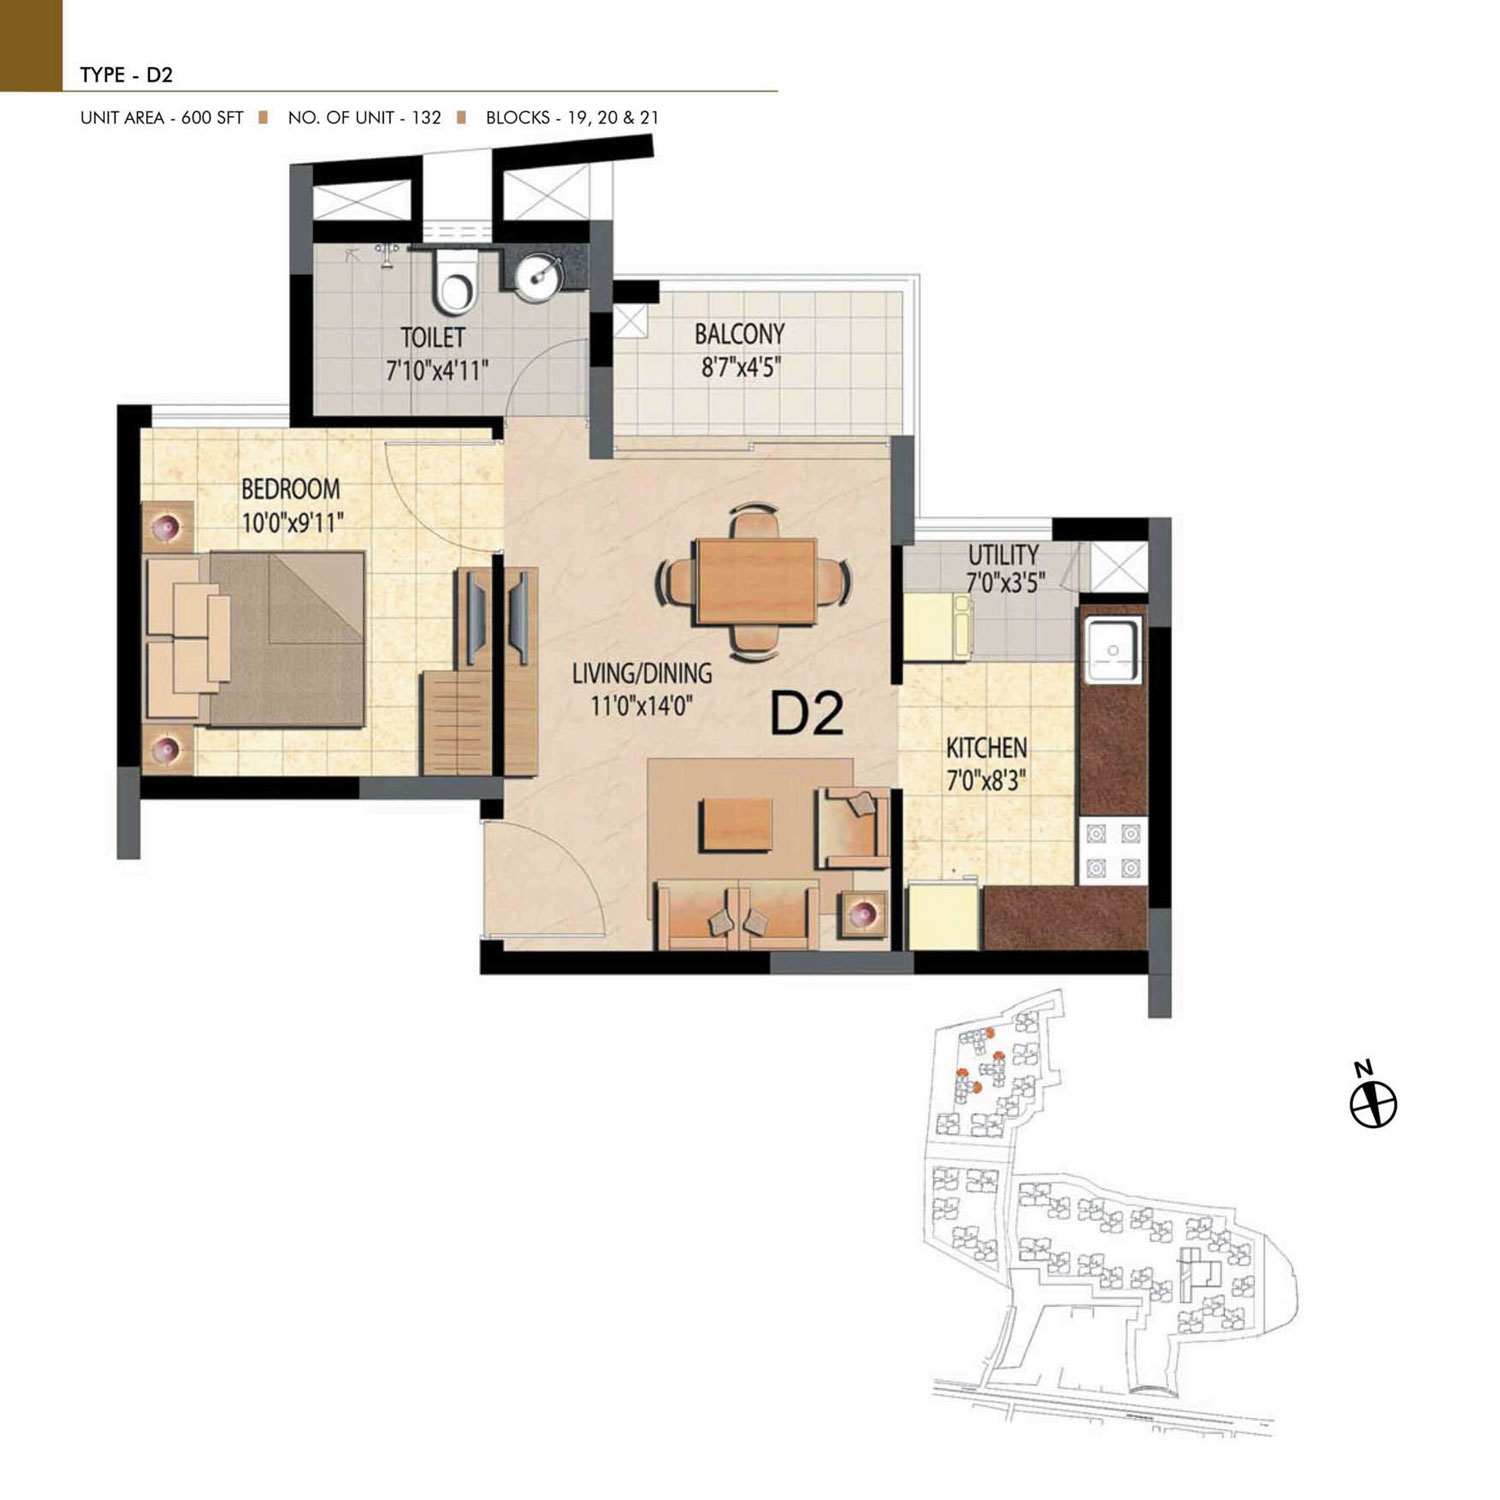 Type D2 - 1 Bed - 600 Sq Ft